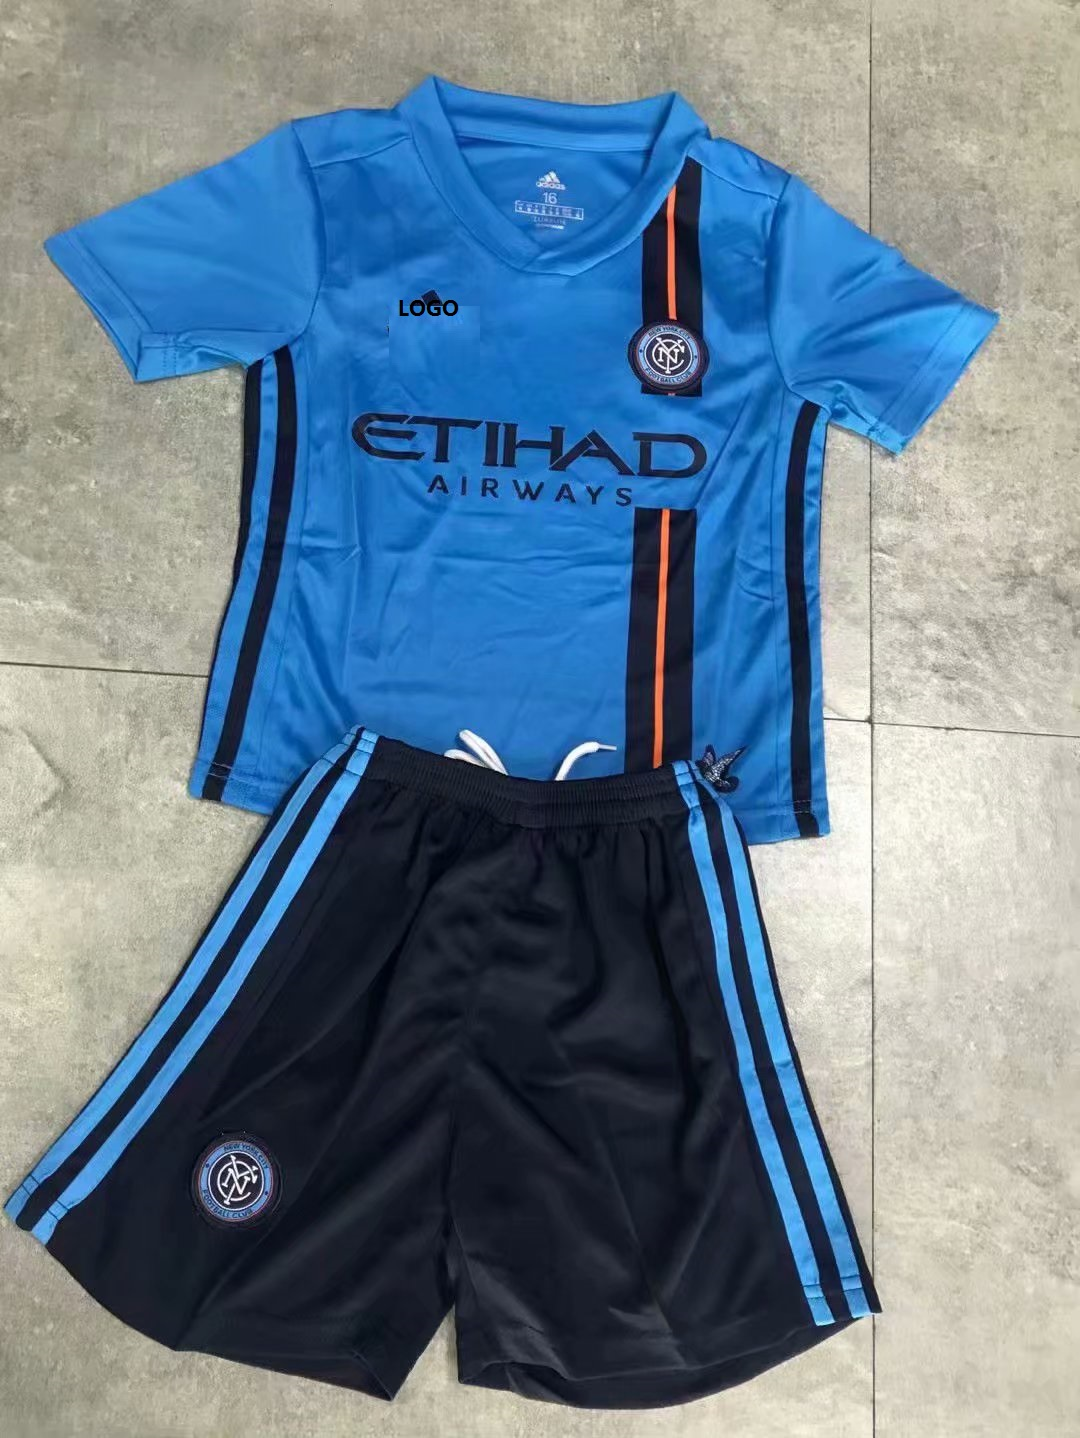 new arrival 8fc54 8e360 2018-19 Adult New York City FC Home Jersey Uniforms Blue Football Kits